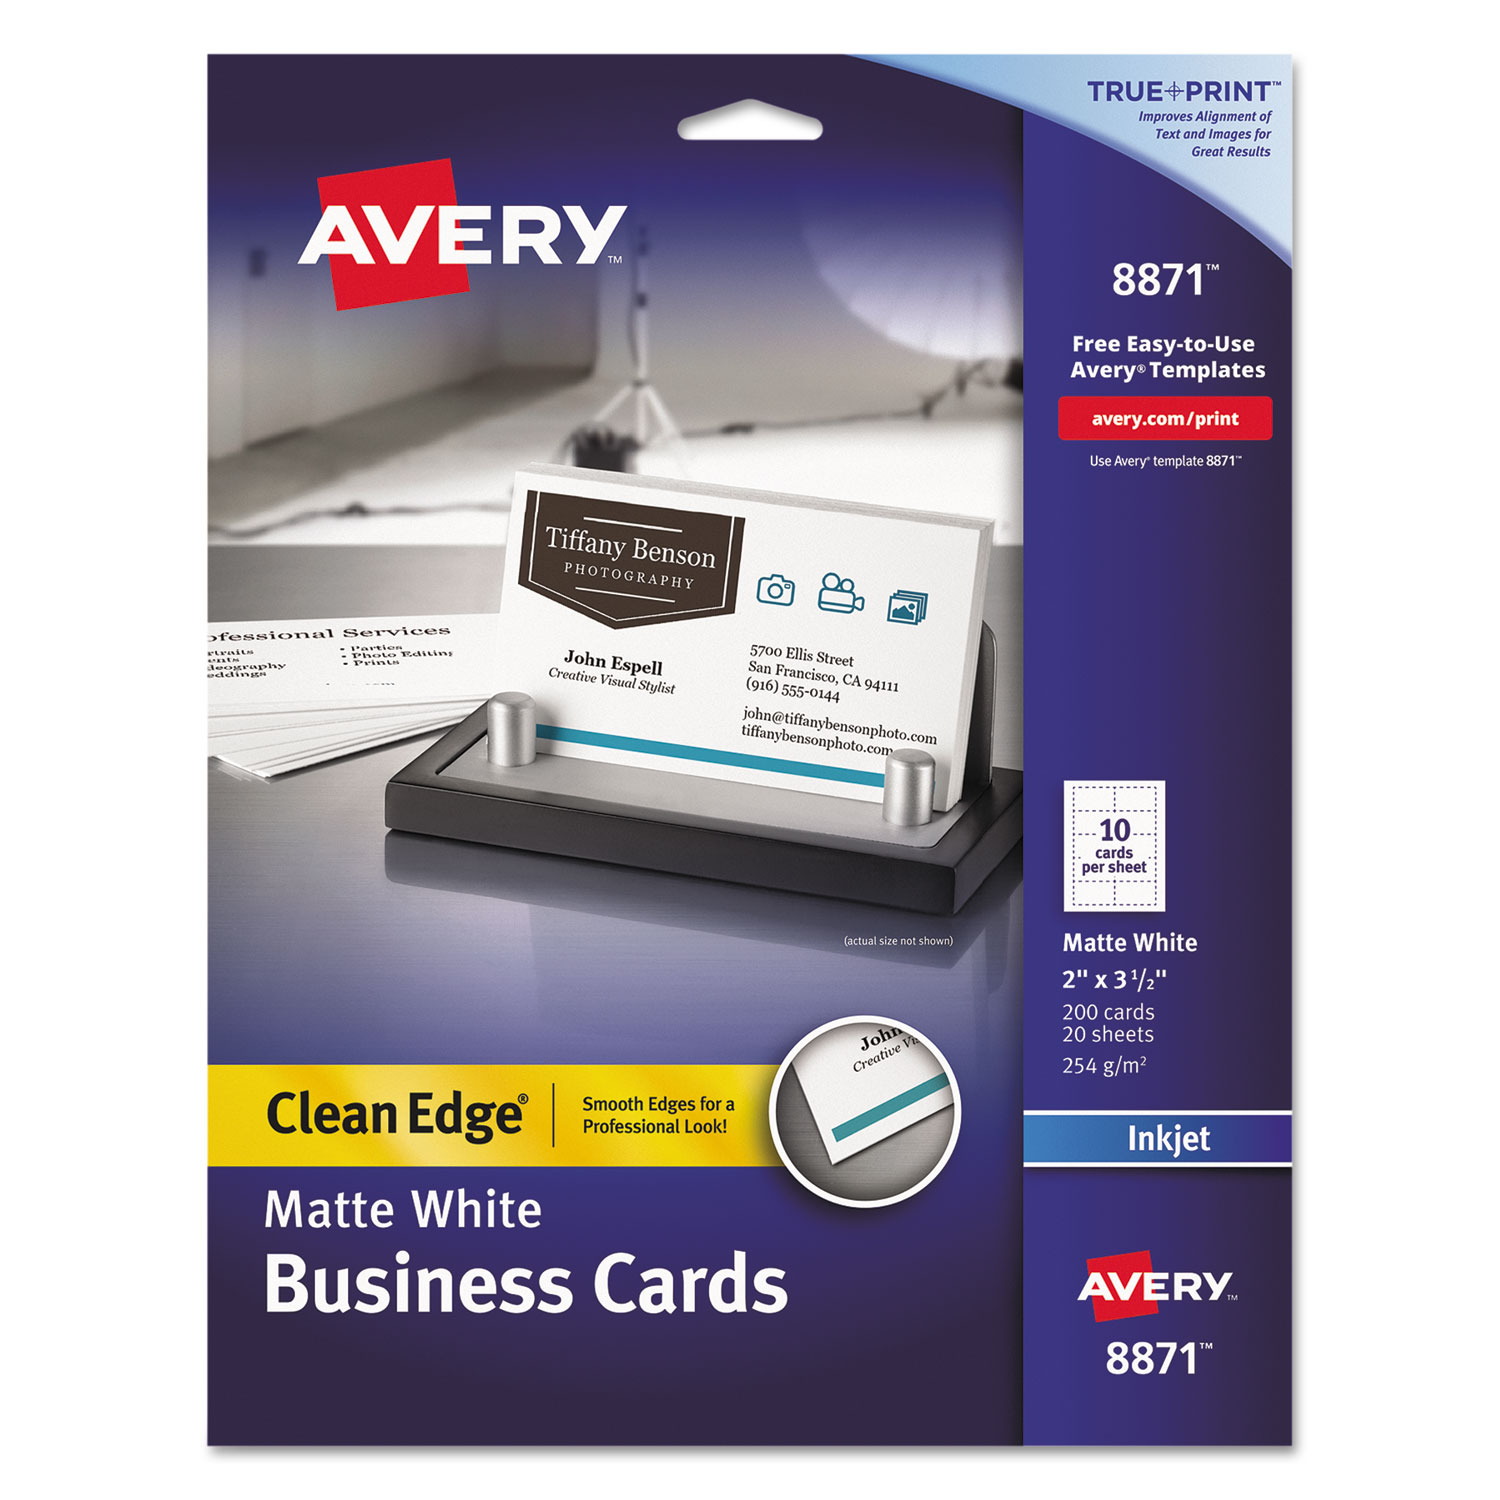 True print clean edge business cards by avery ave8871 ave8871 thumbnail 1 colourmoves